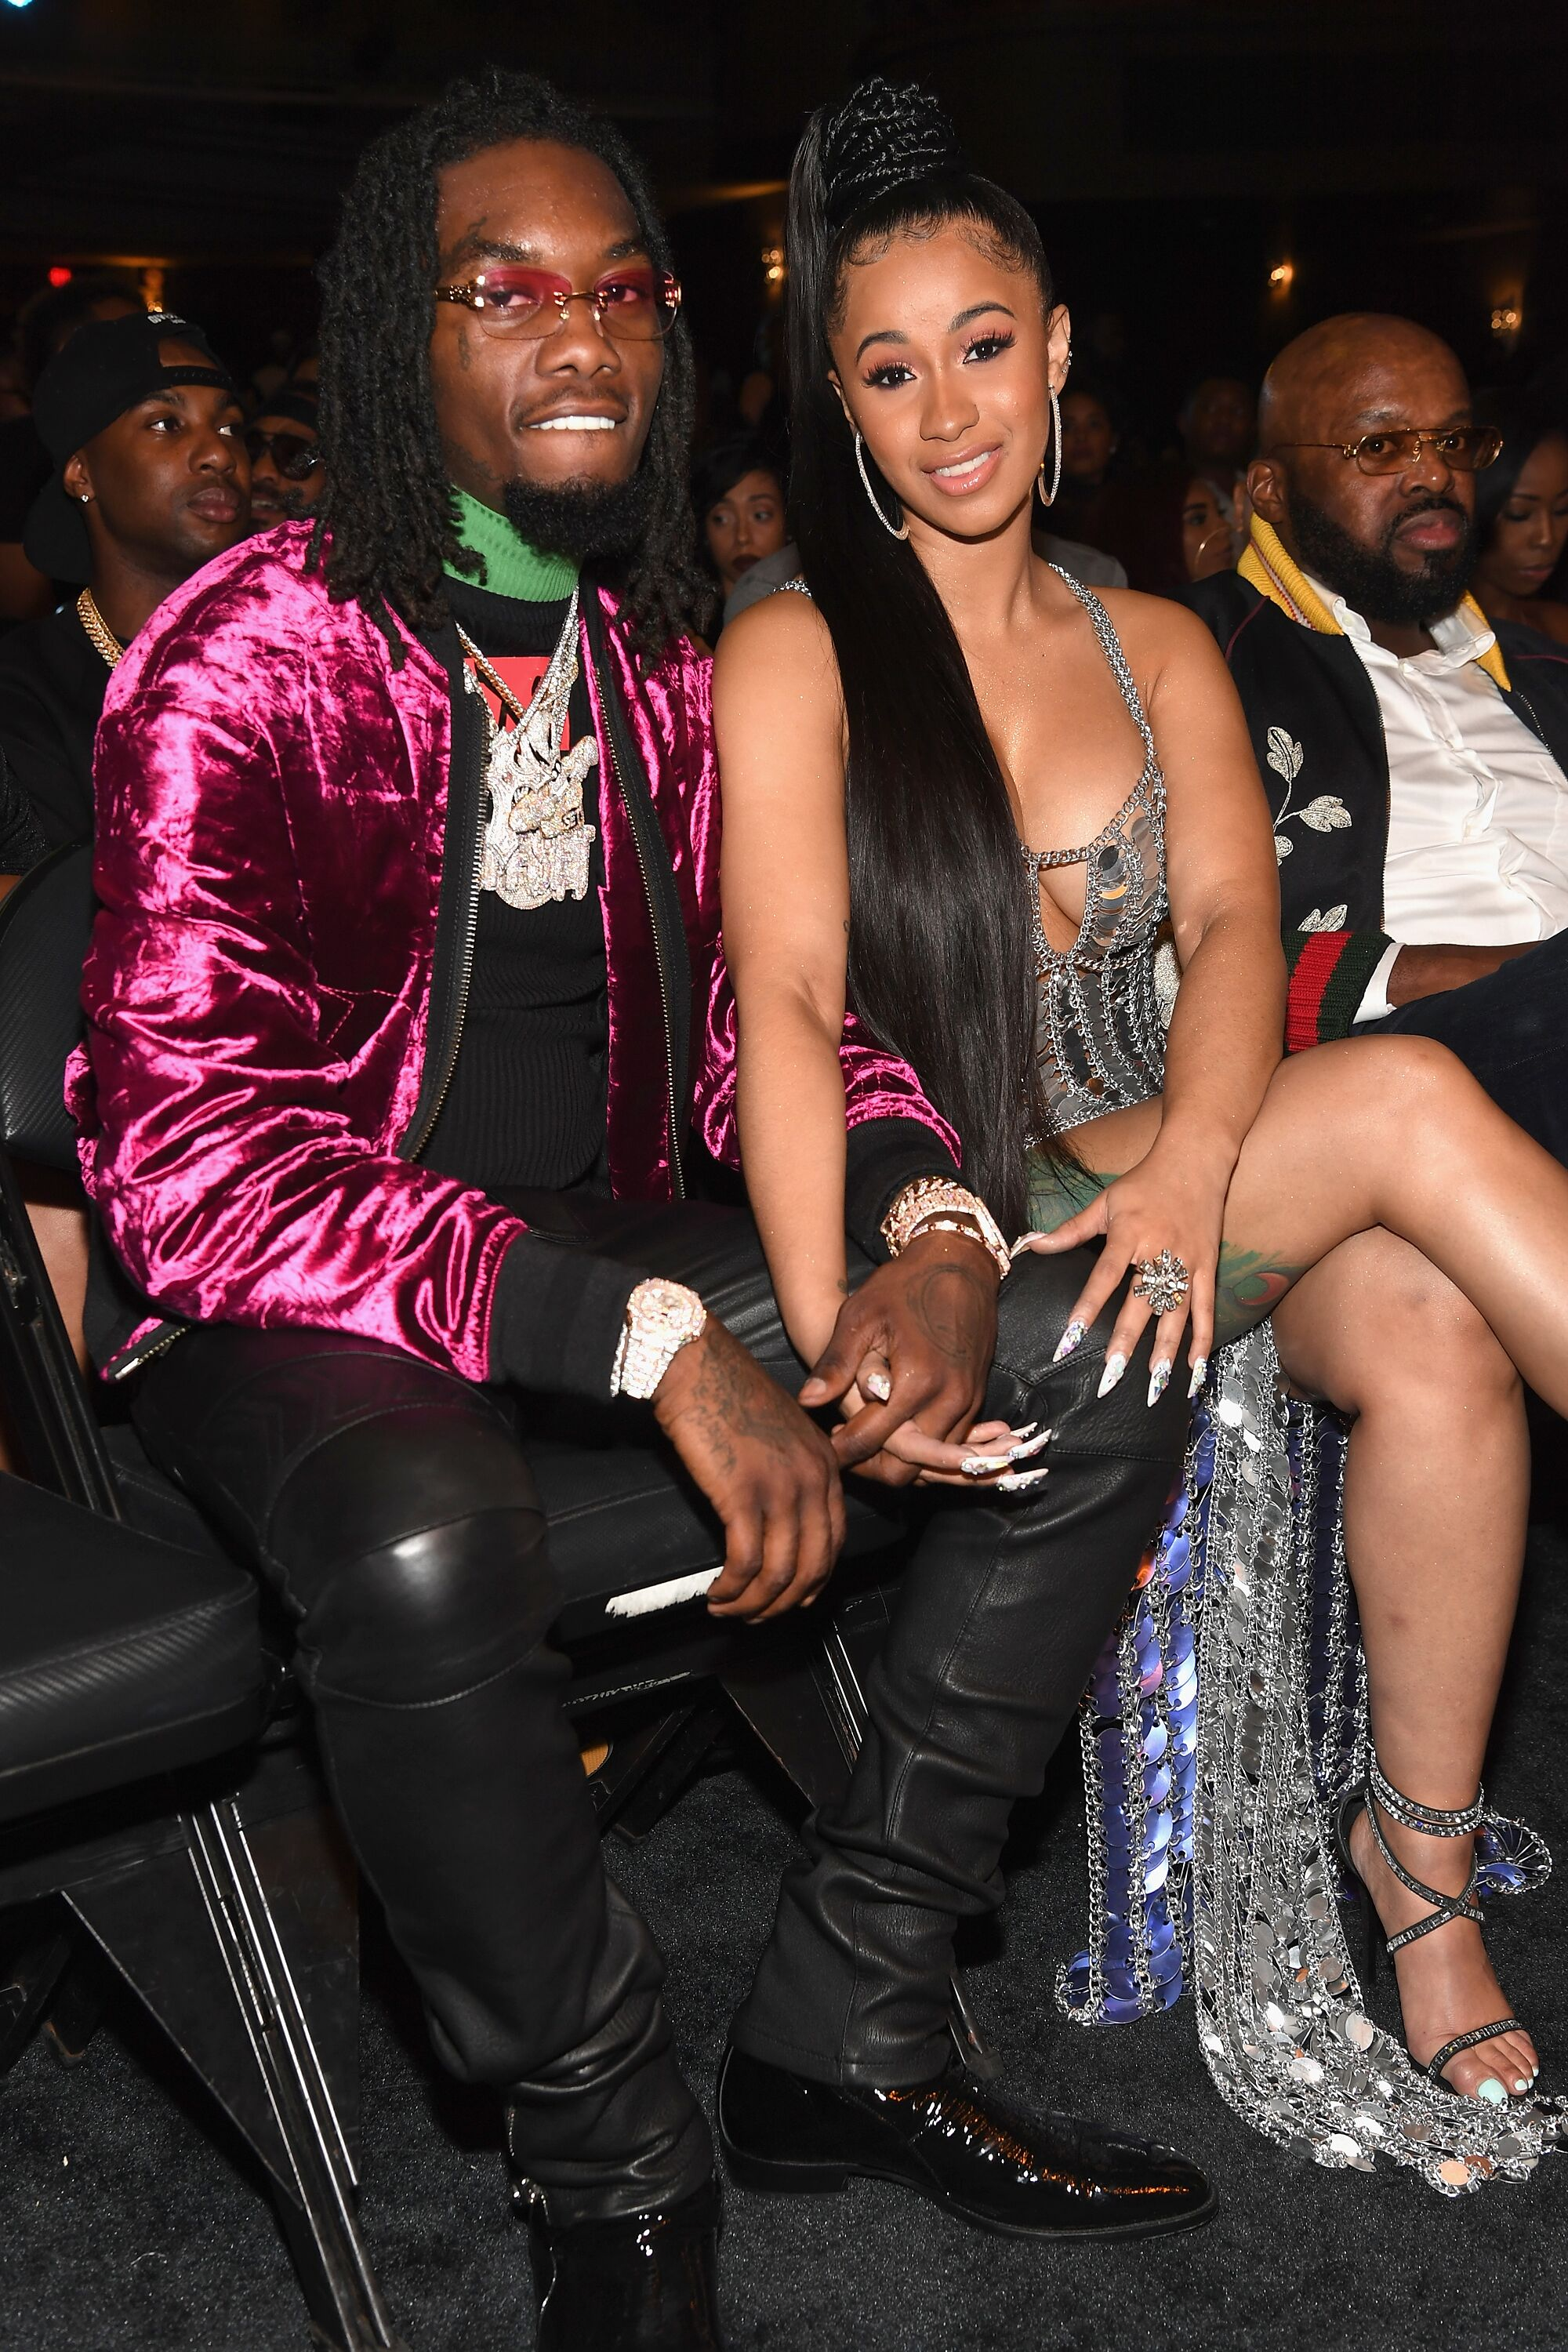 Cardi and Offset in matching sequined outfits during an awards night | Source: Getty Images/GlobalImagesUkraine